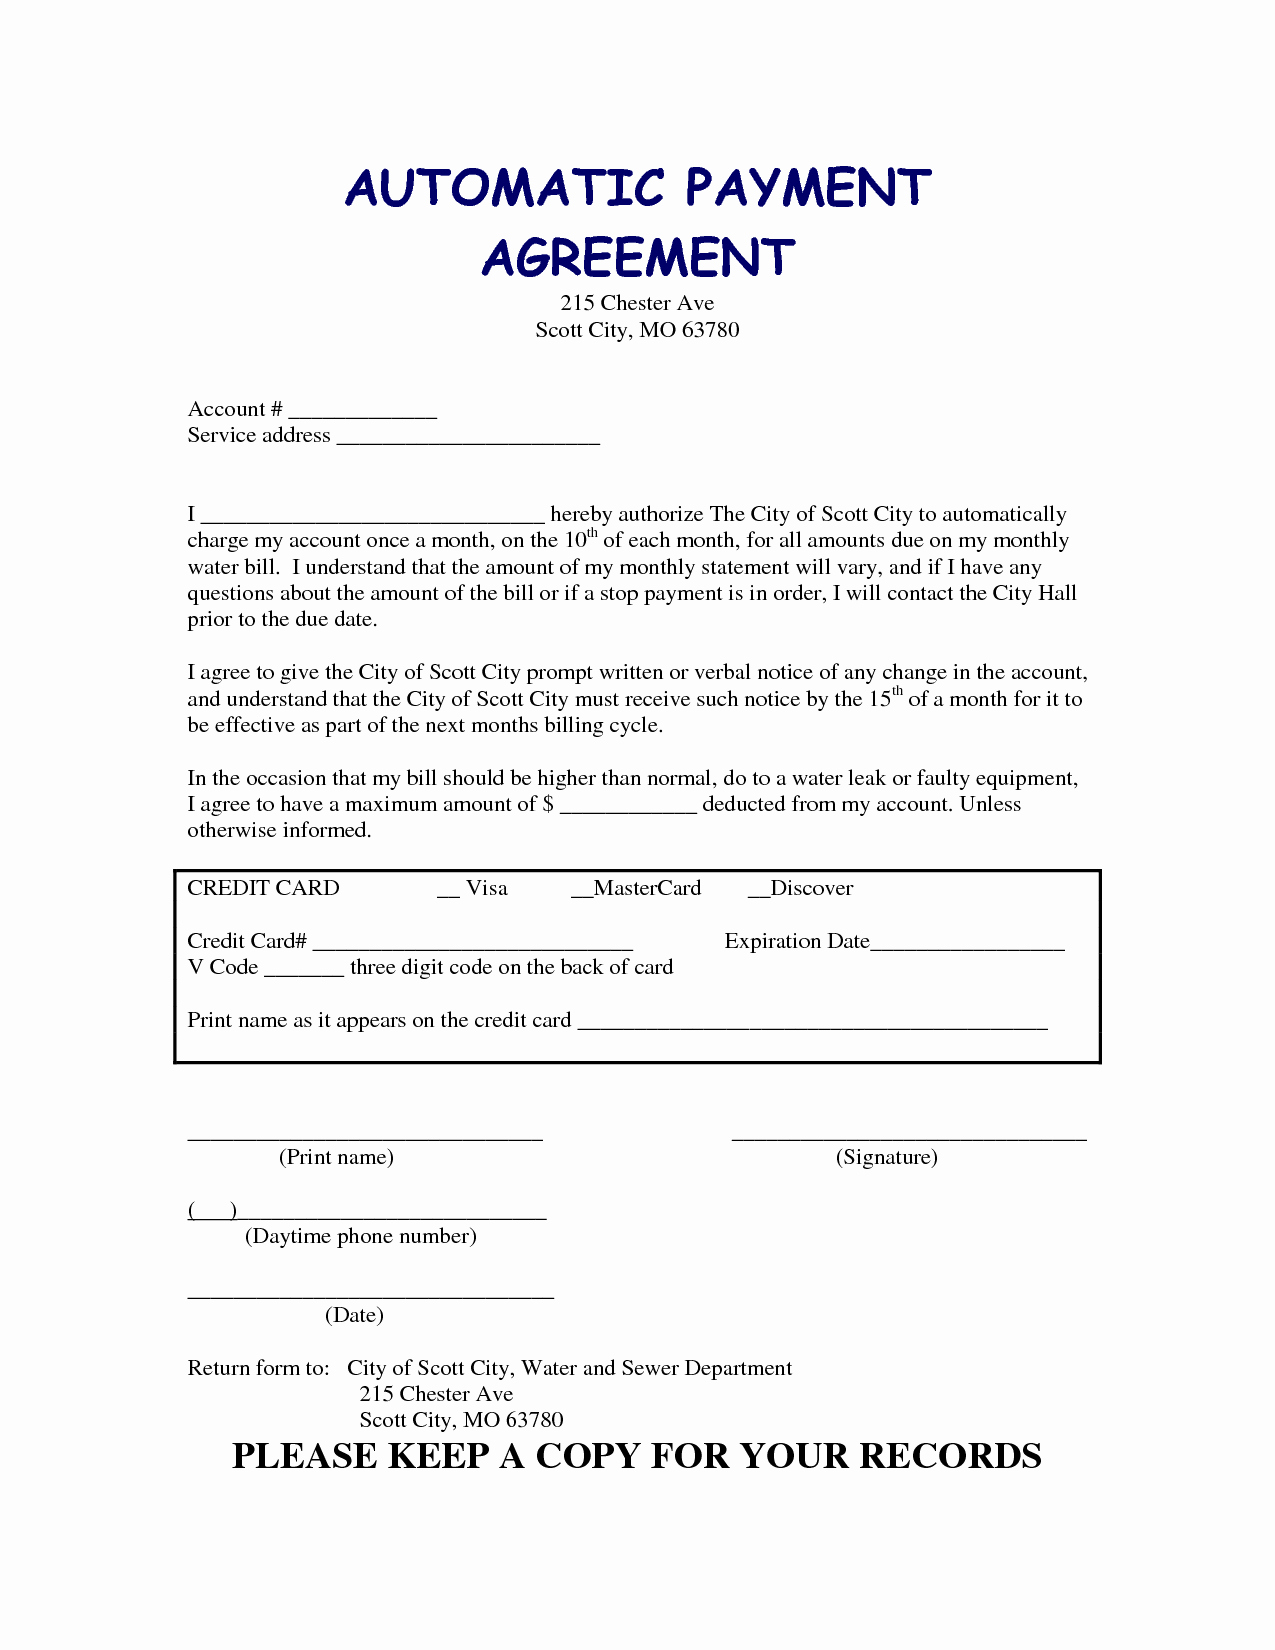 Car Payment Contract Template Fresh Ally Auto Help Center Payments Faqs Hostworlvapet37